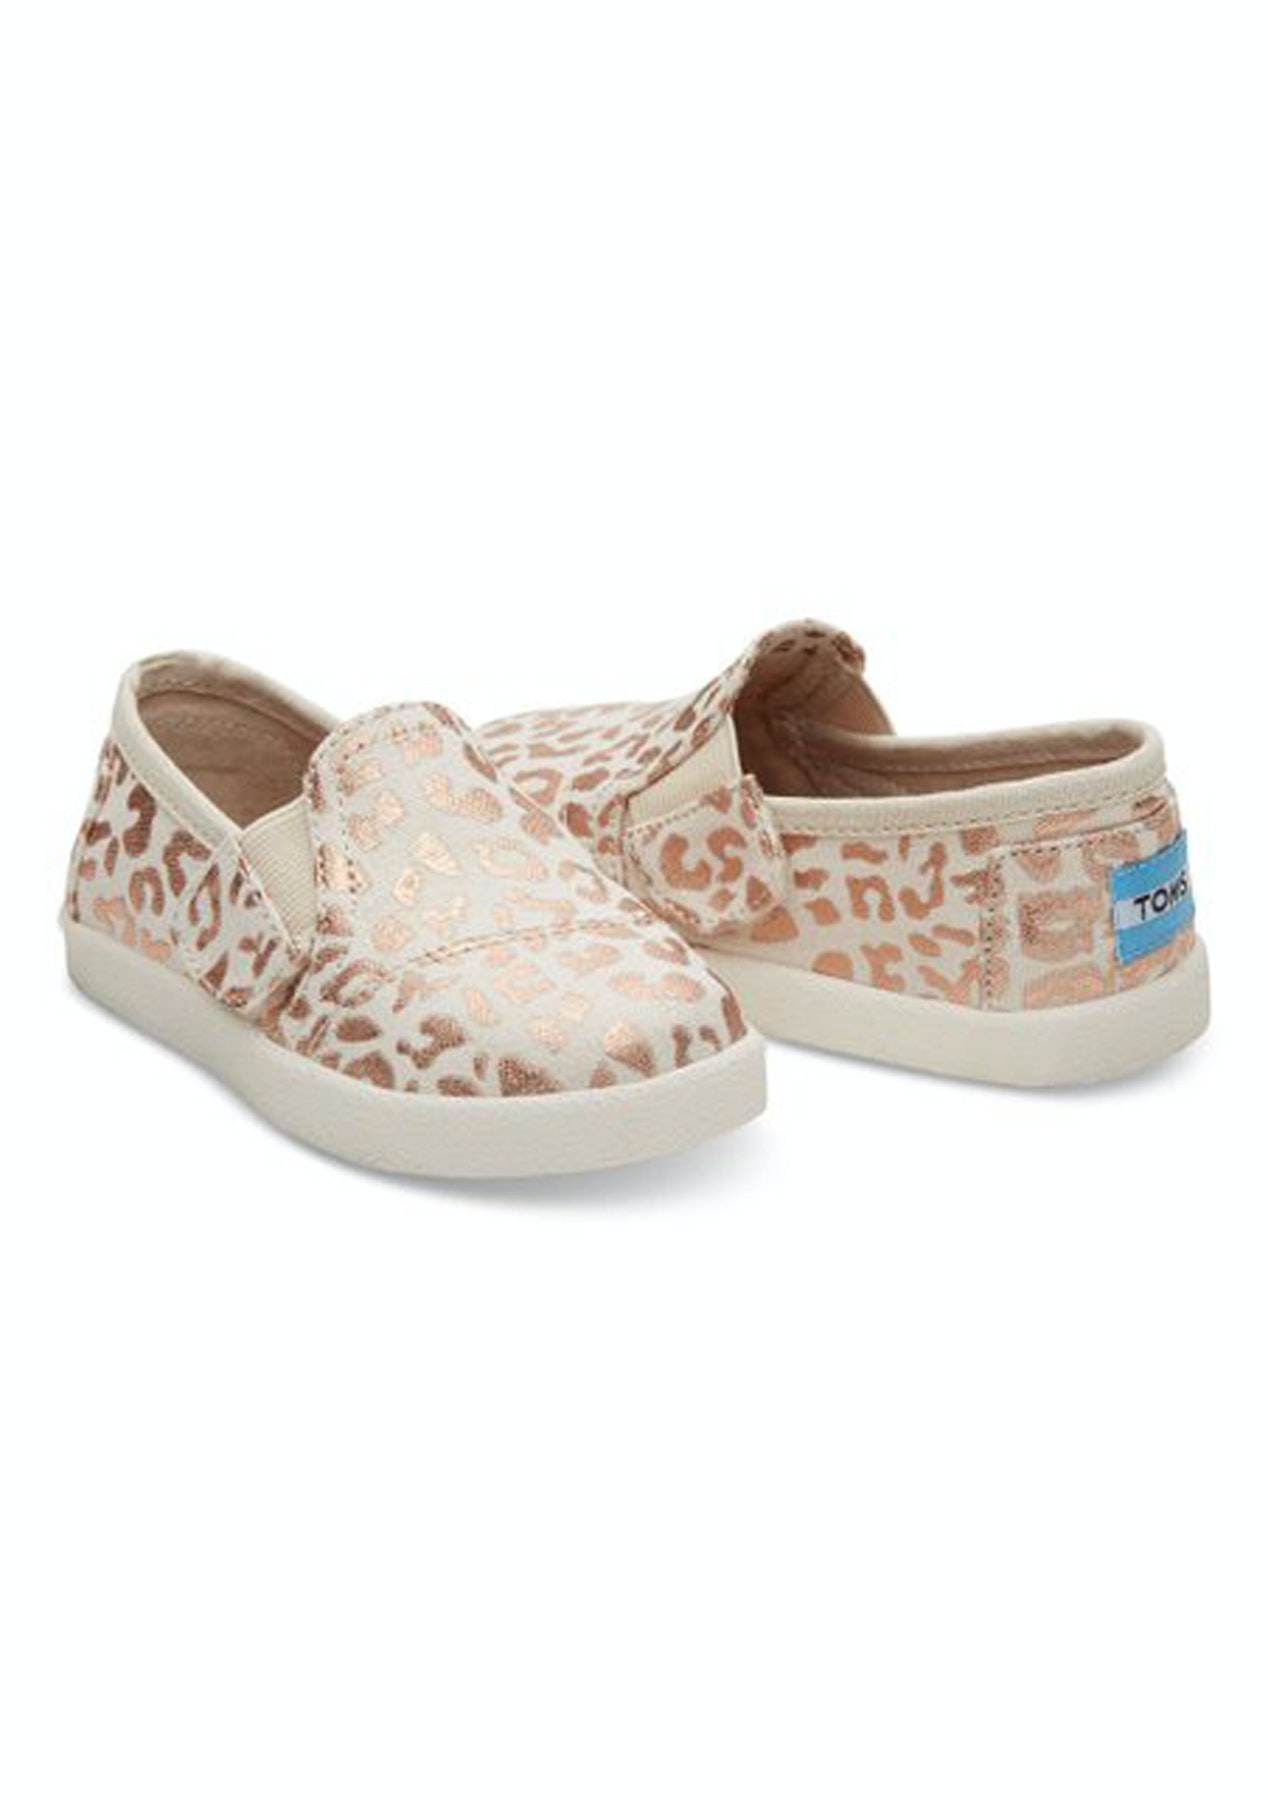 7dc8e9b8999 Toms - Tiny Avalon Slipon - Natural Cheetah Foil - Boxing Day Baby + Kids -  Onceit